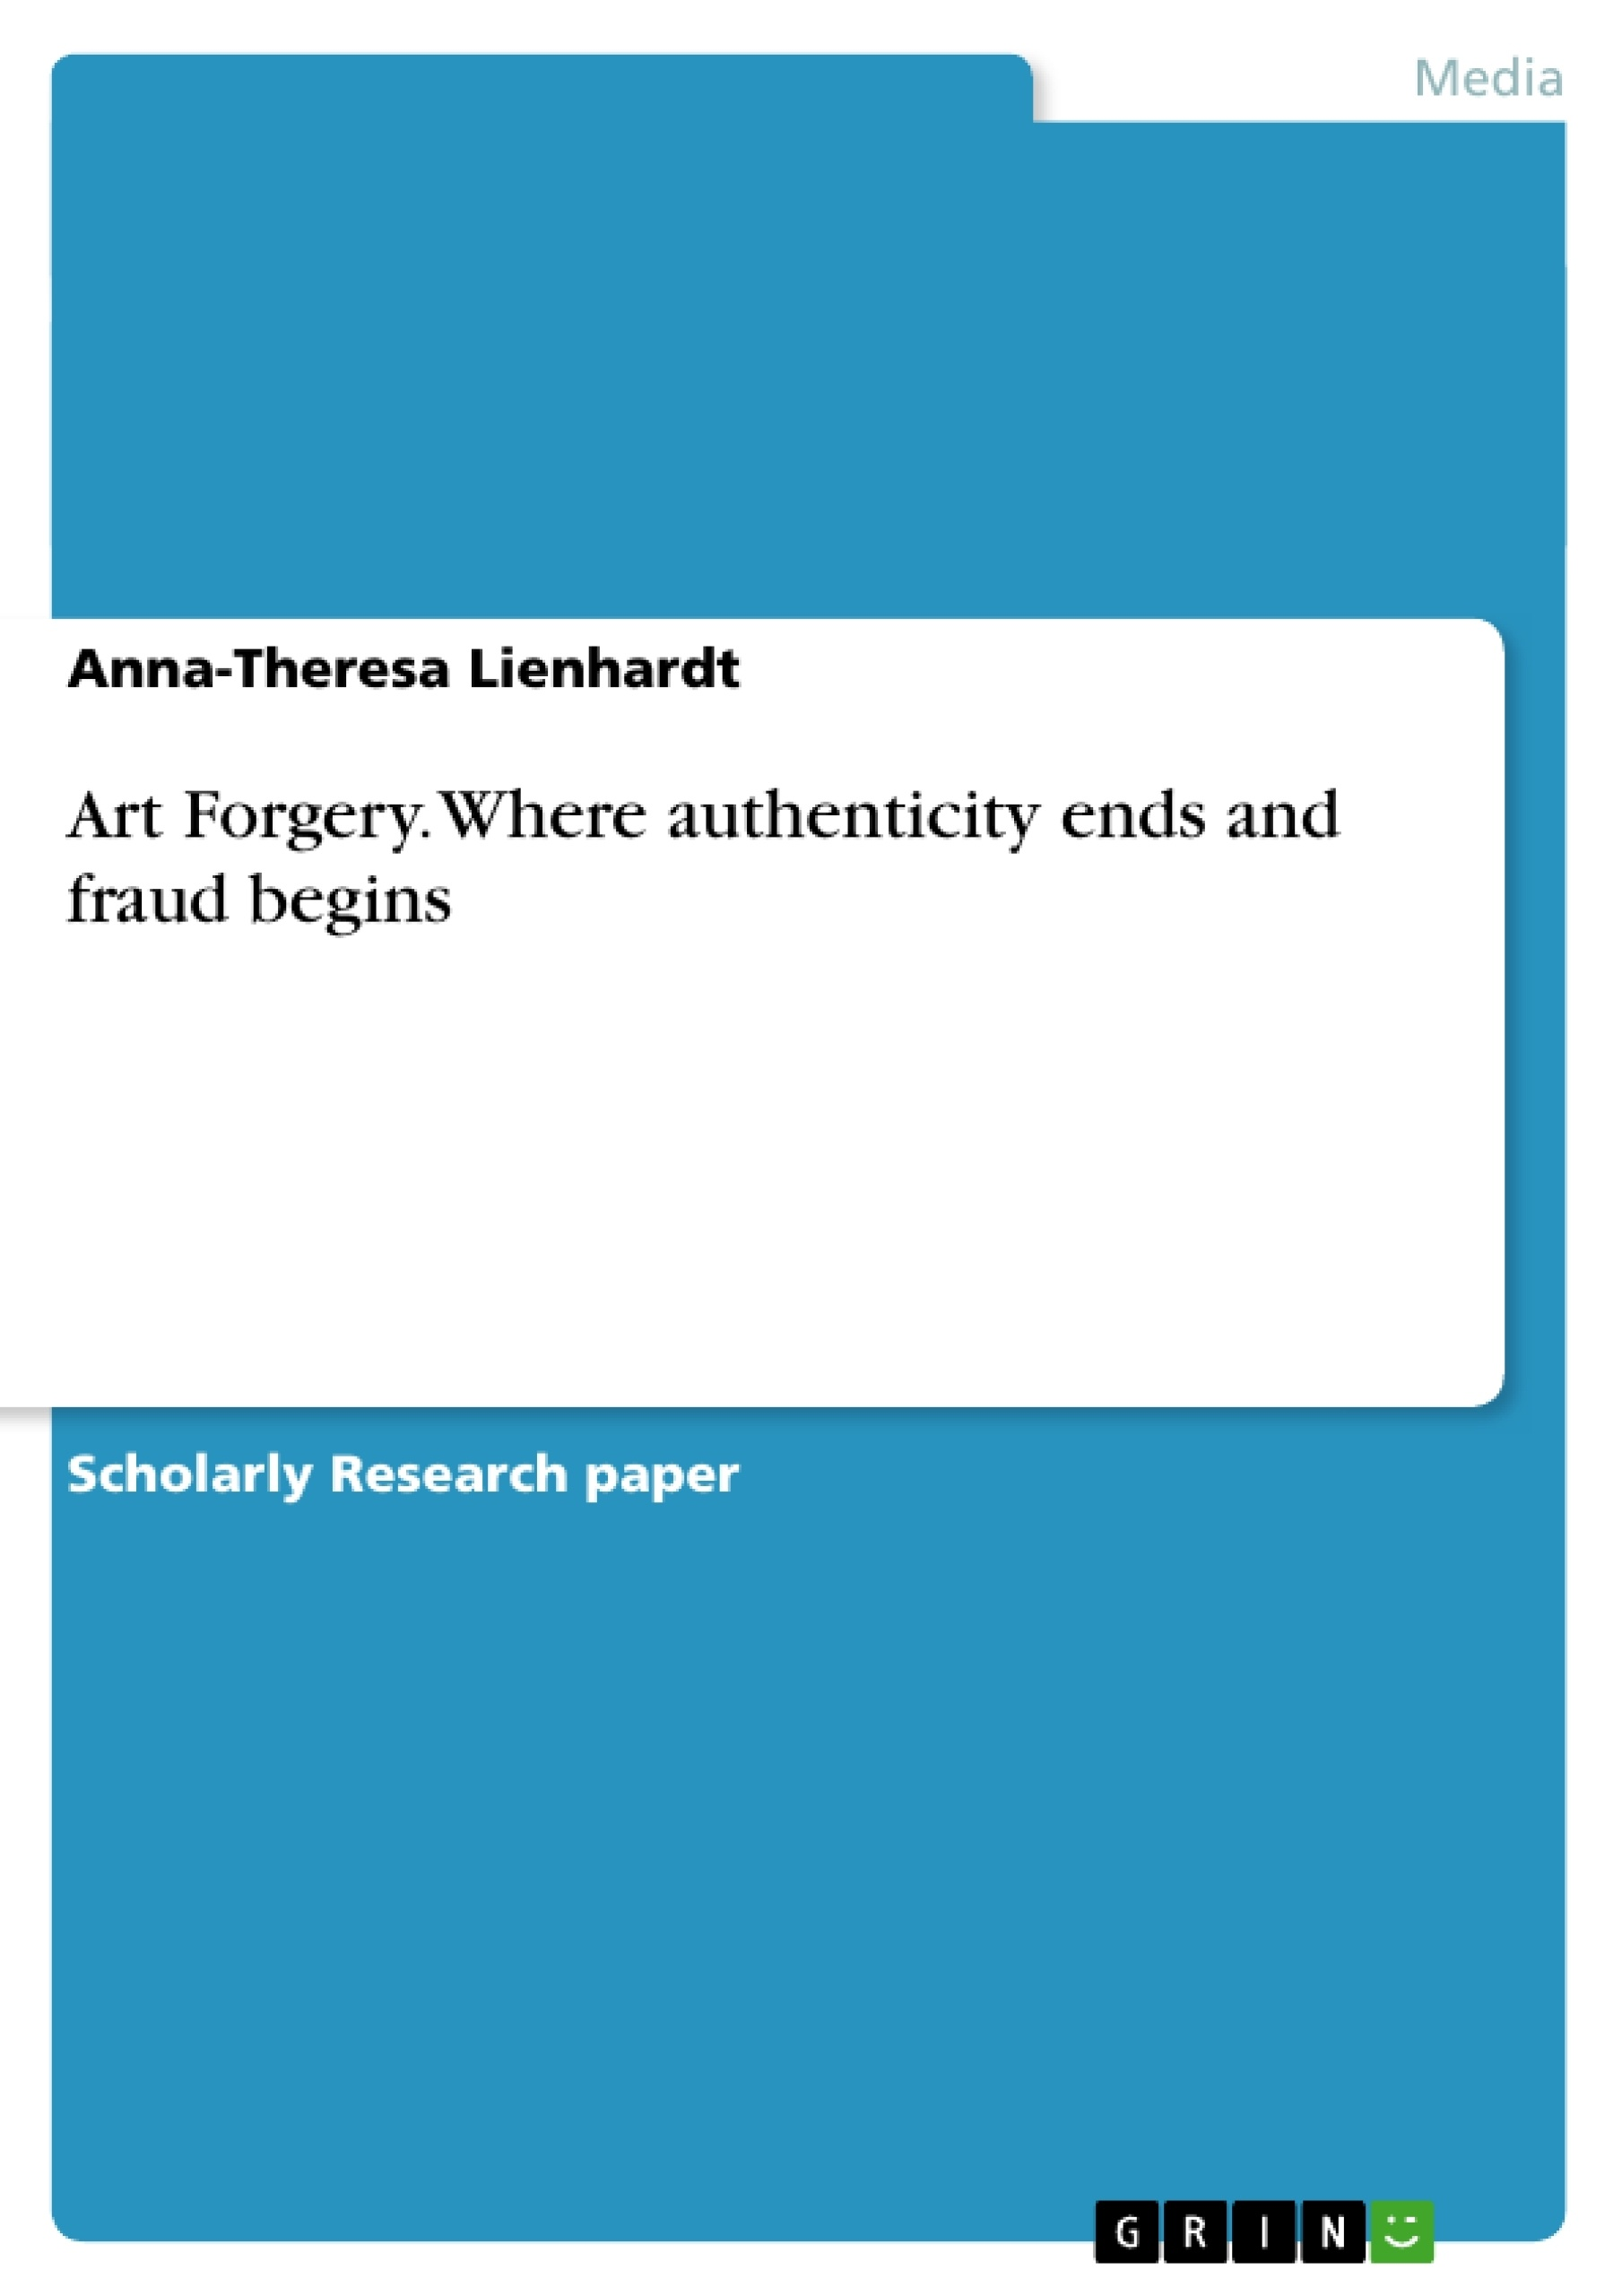 Title: Art Forgery. Where authenticity ends and fraud begins